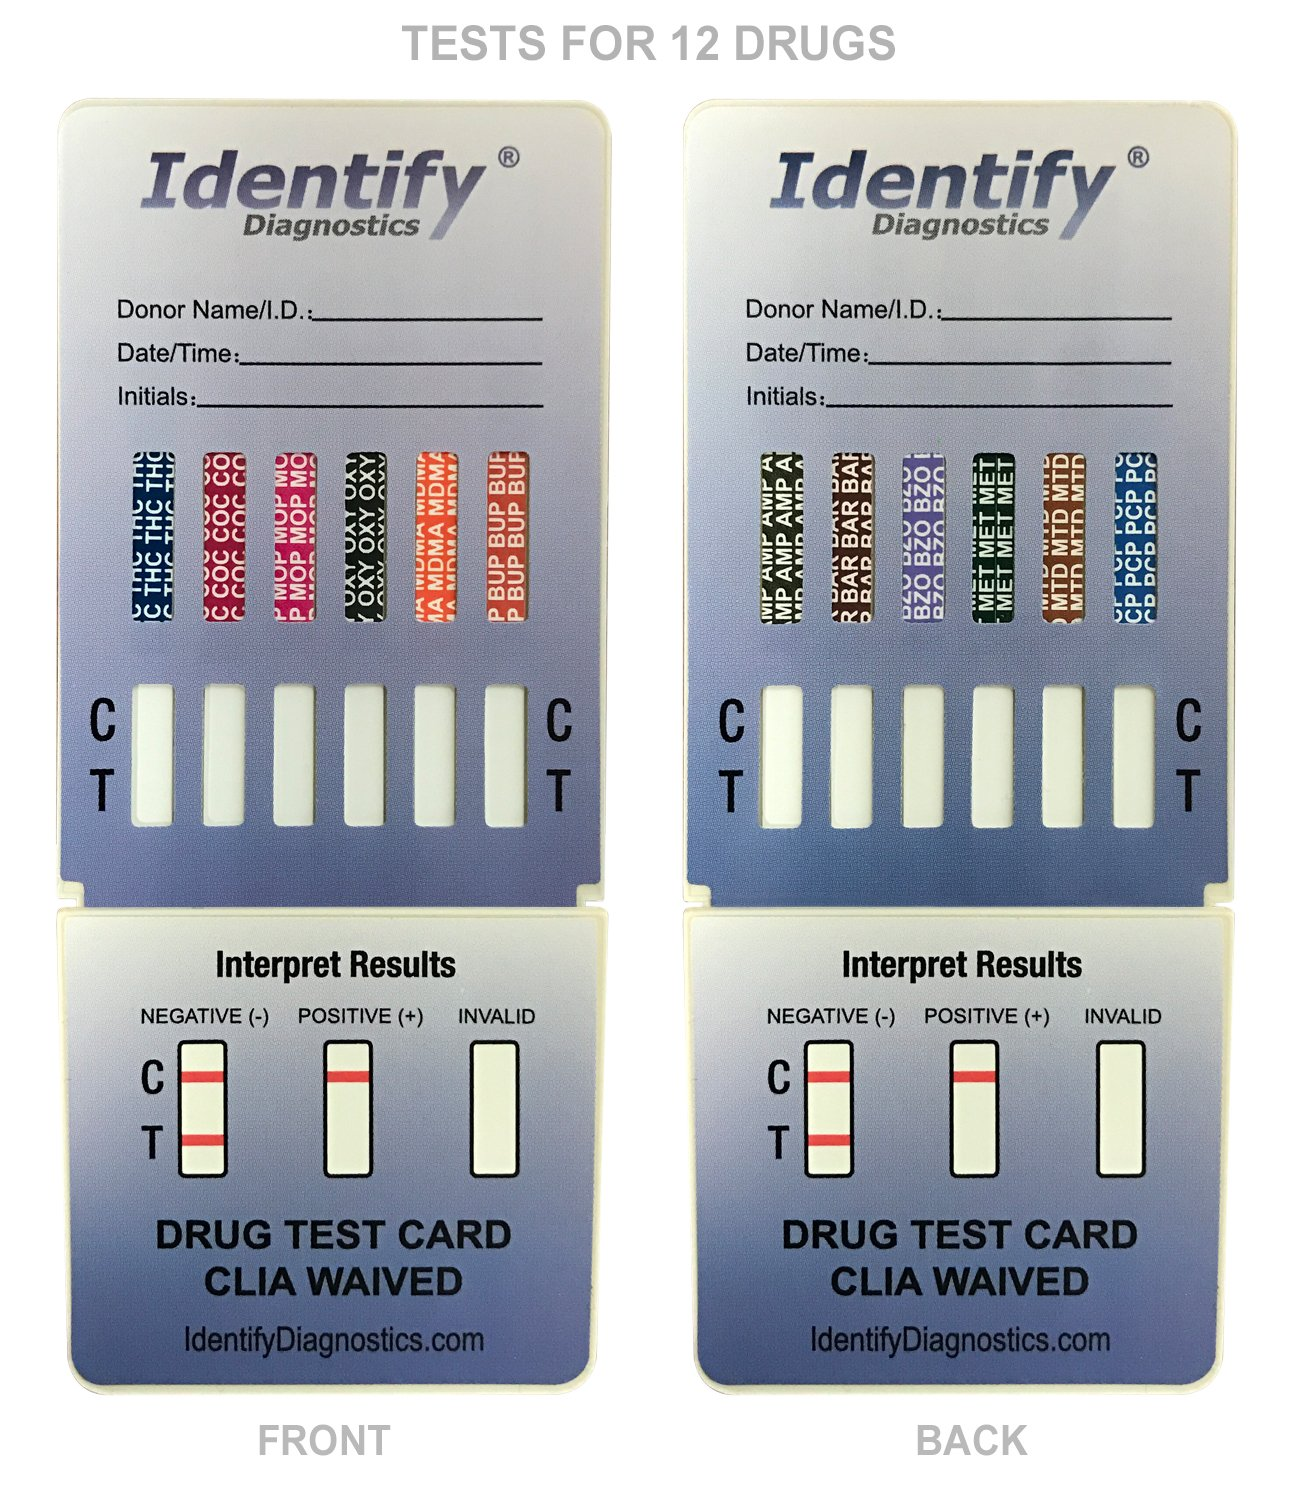 5 Pack Identify Diagnostics 12 Panel Drug Test Dip with Low Opiates Cutoff - Testing Instantly for 12 Drugs: THC, COC, MOP, OXY, MDMA, BUP, AMP, Bar, BZO, MET, MTD, PCP #ID-CP12-DIP